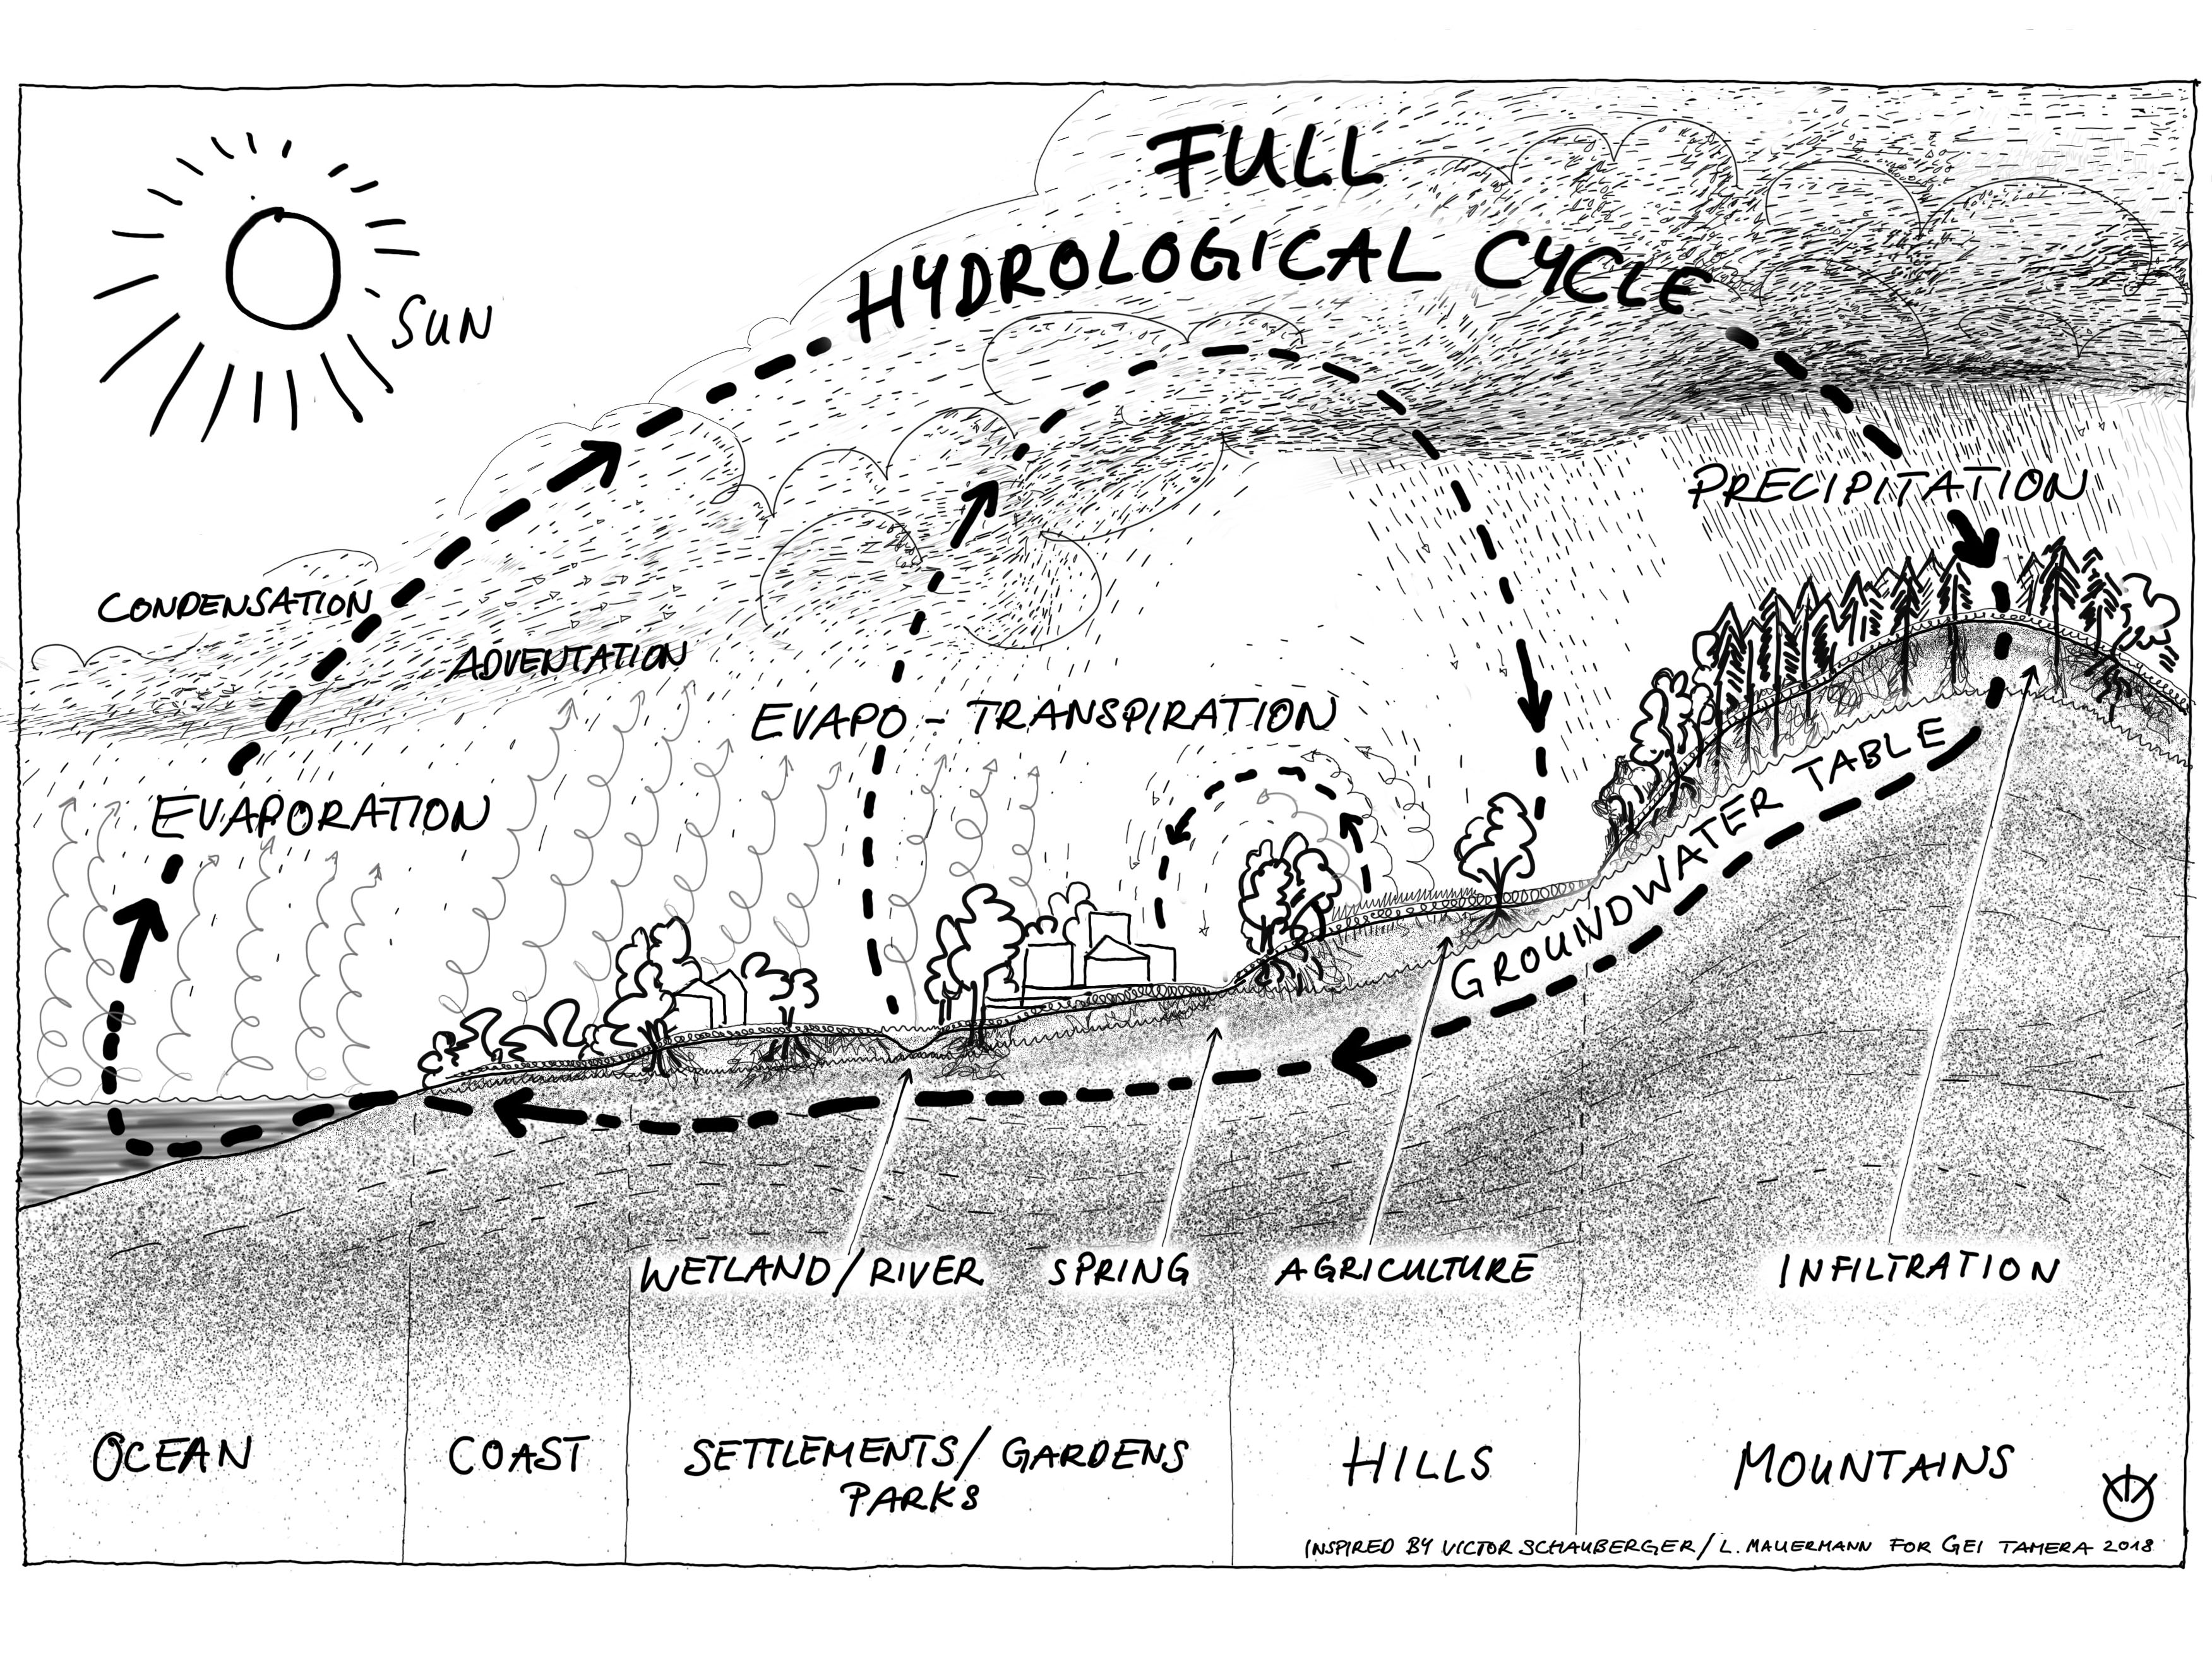 Full Hydrological Cycle